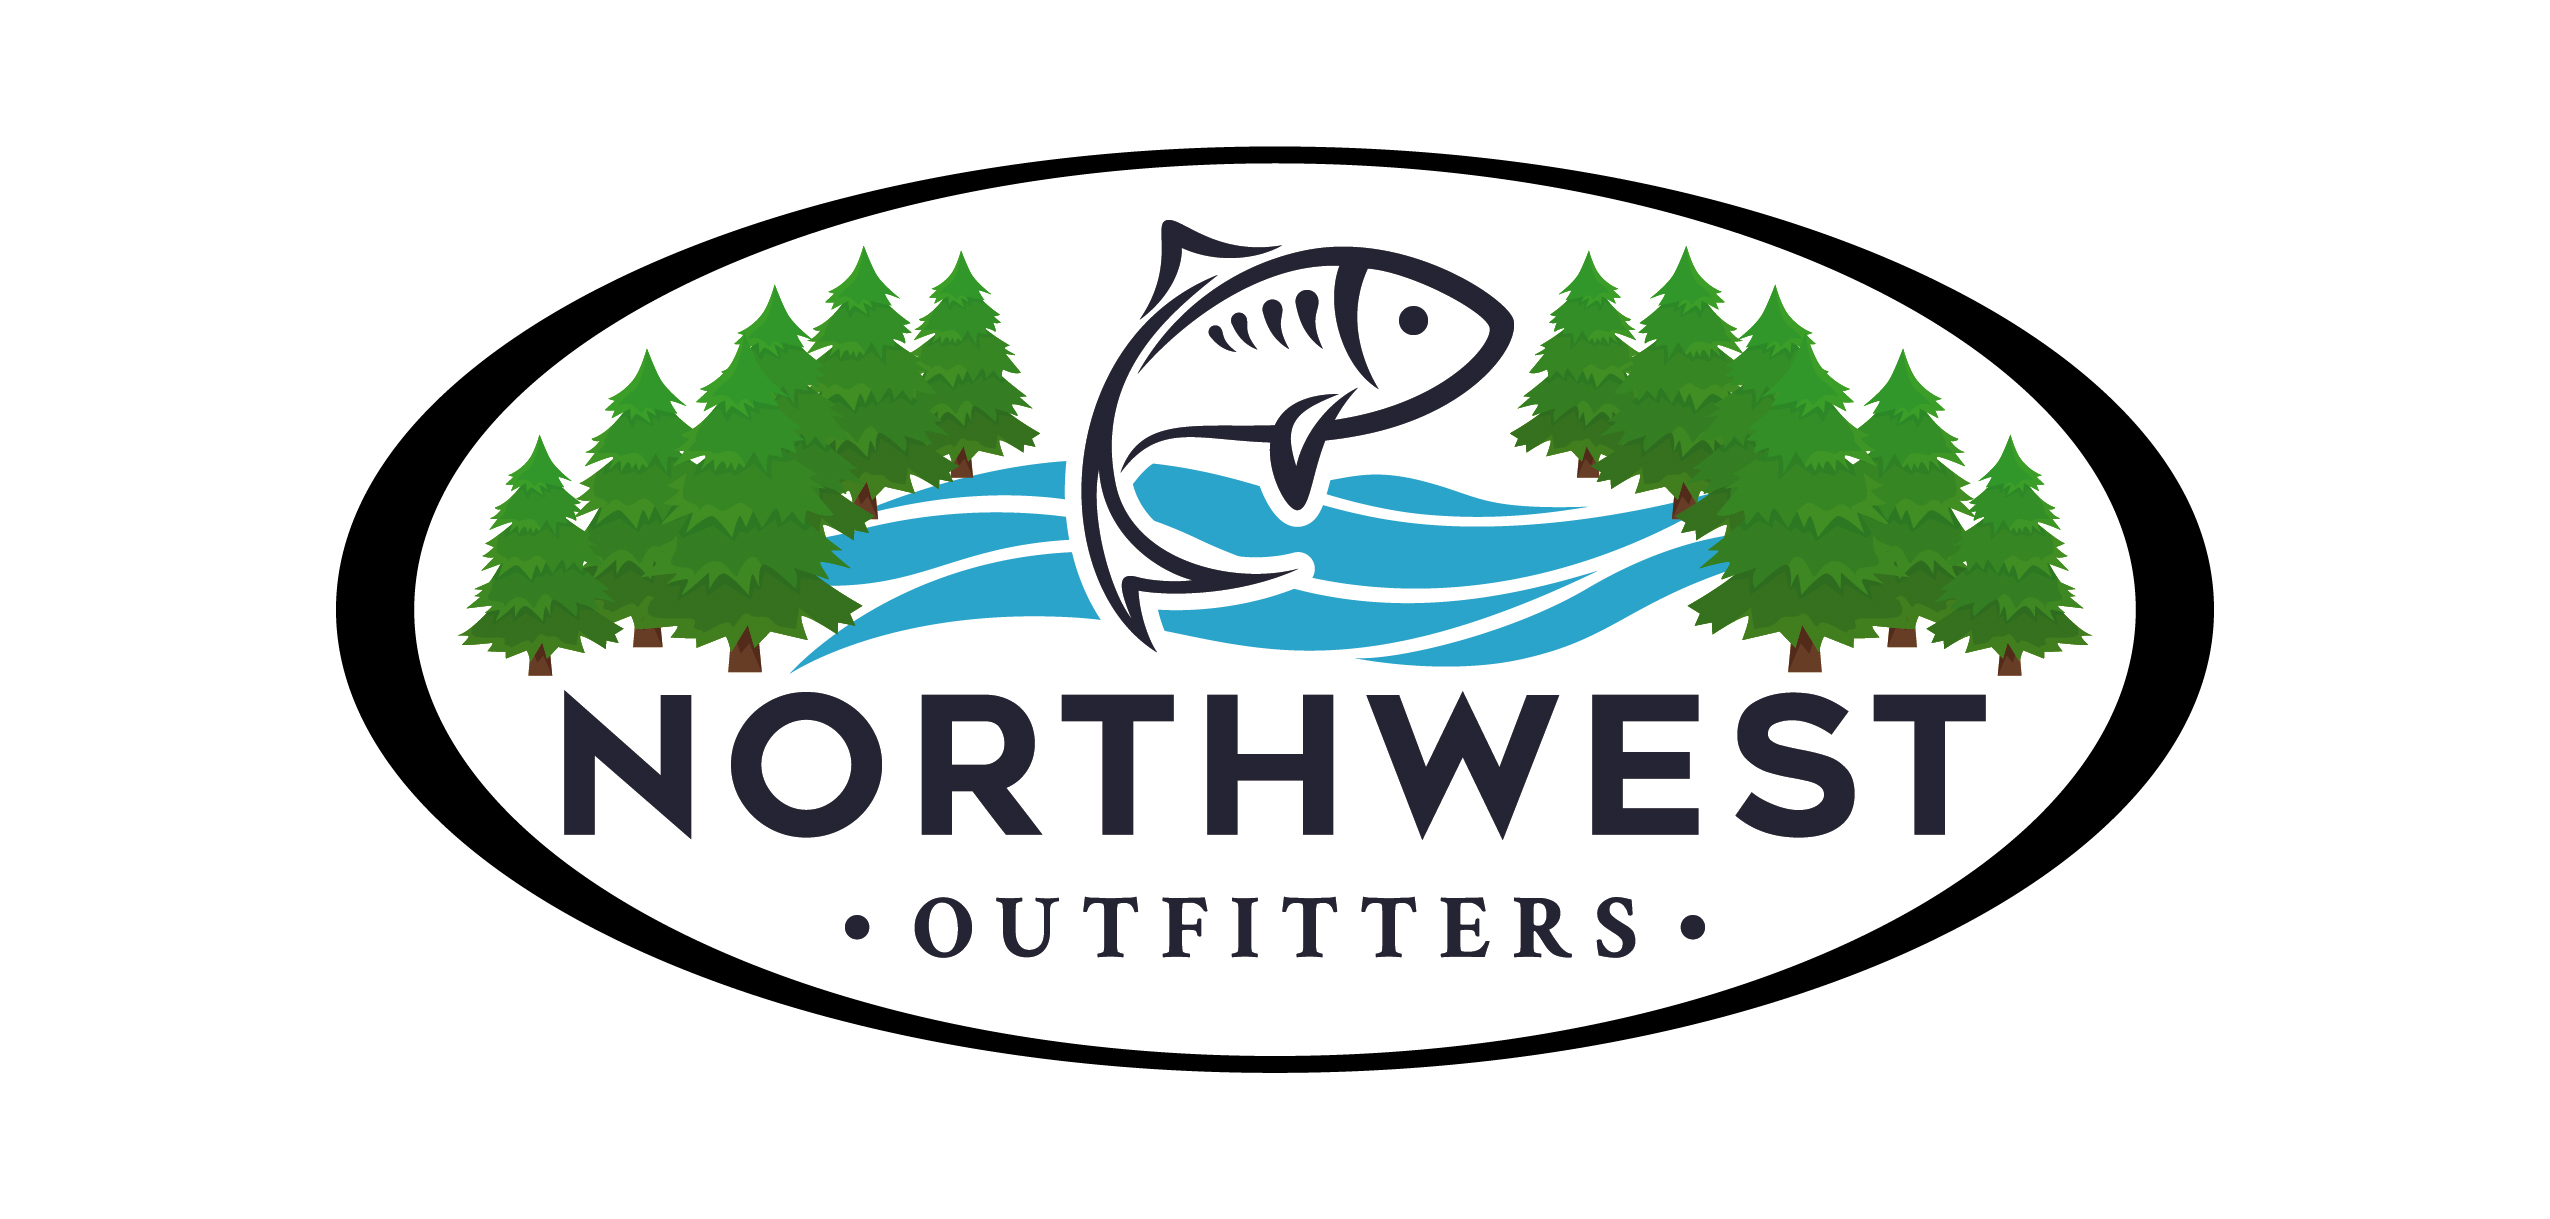 Northwest Outfitters